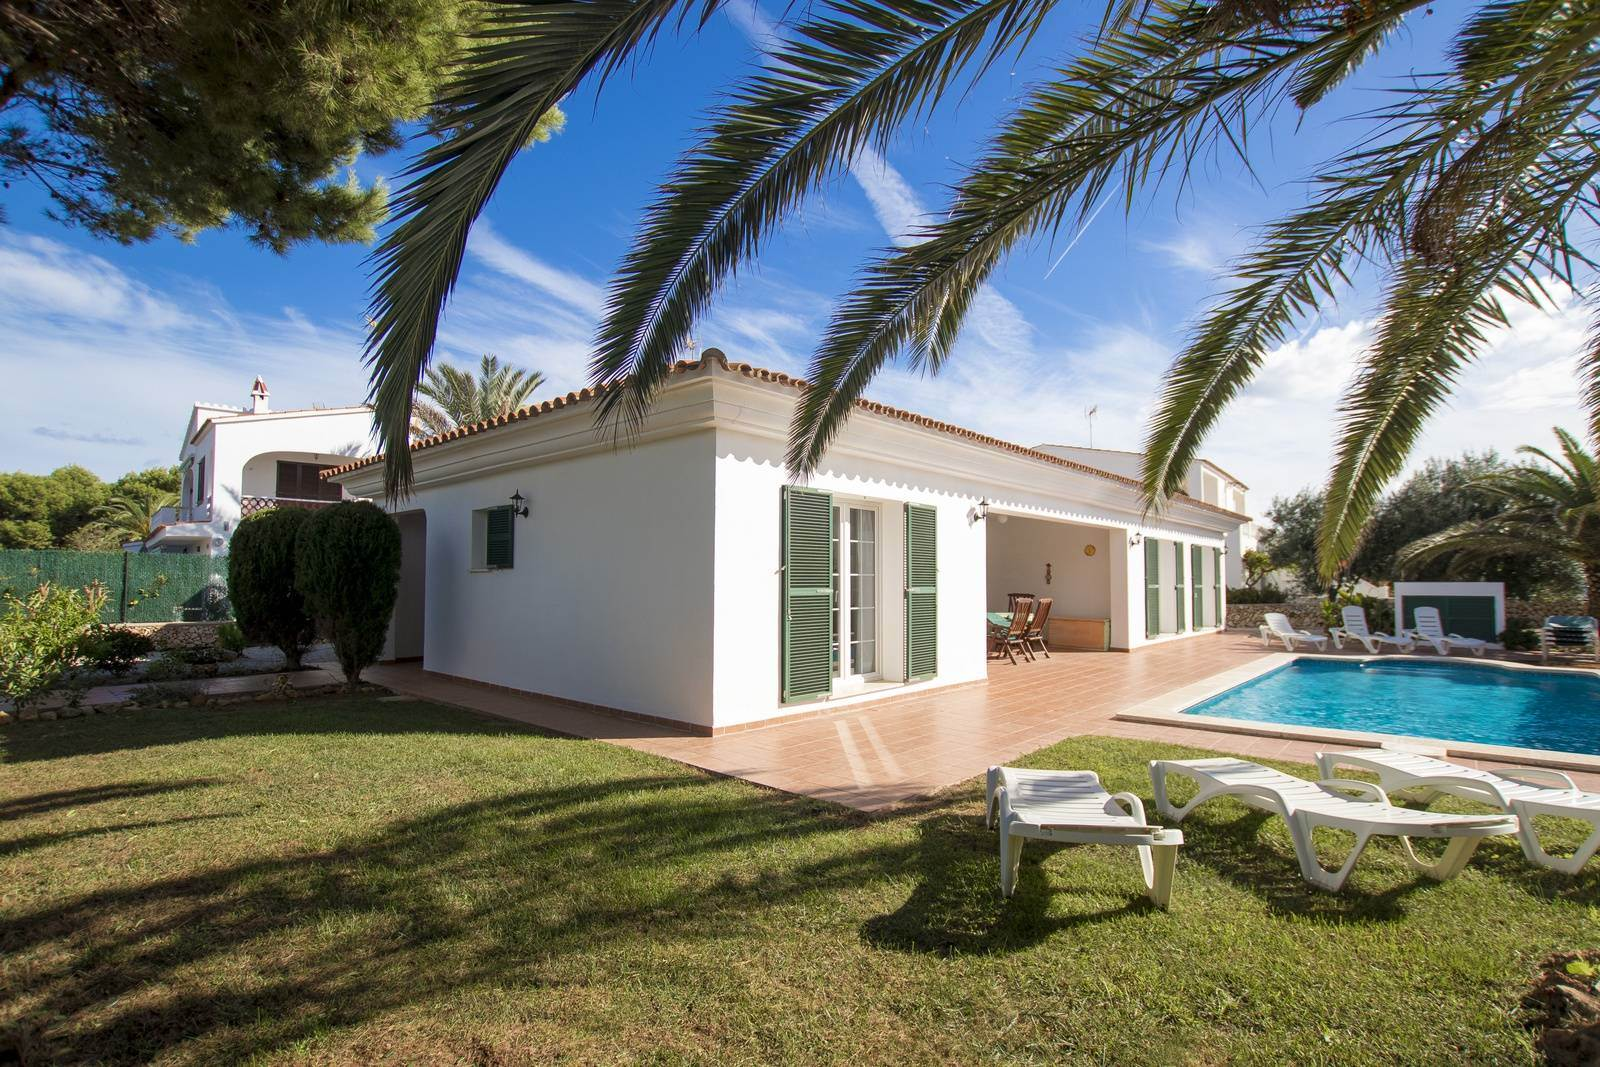 Lovely Villa for sale in Menorca with walking distance to a sandy beach in Arenal